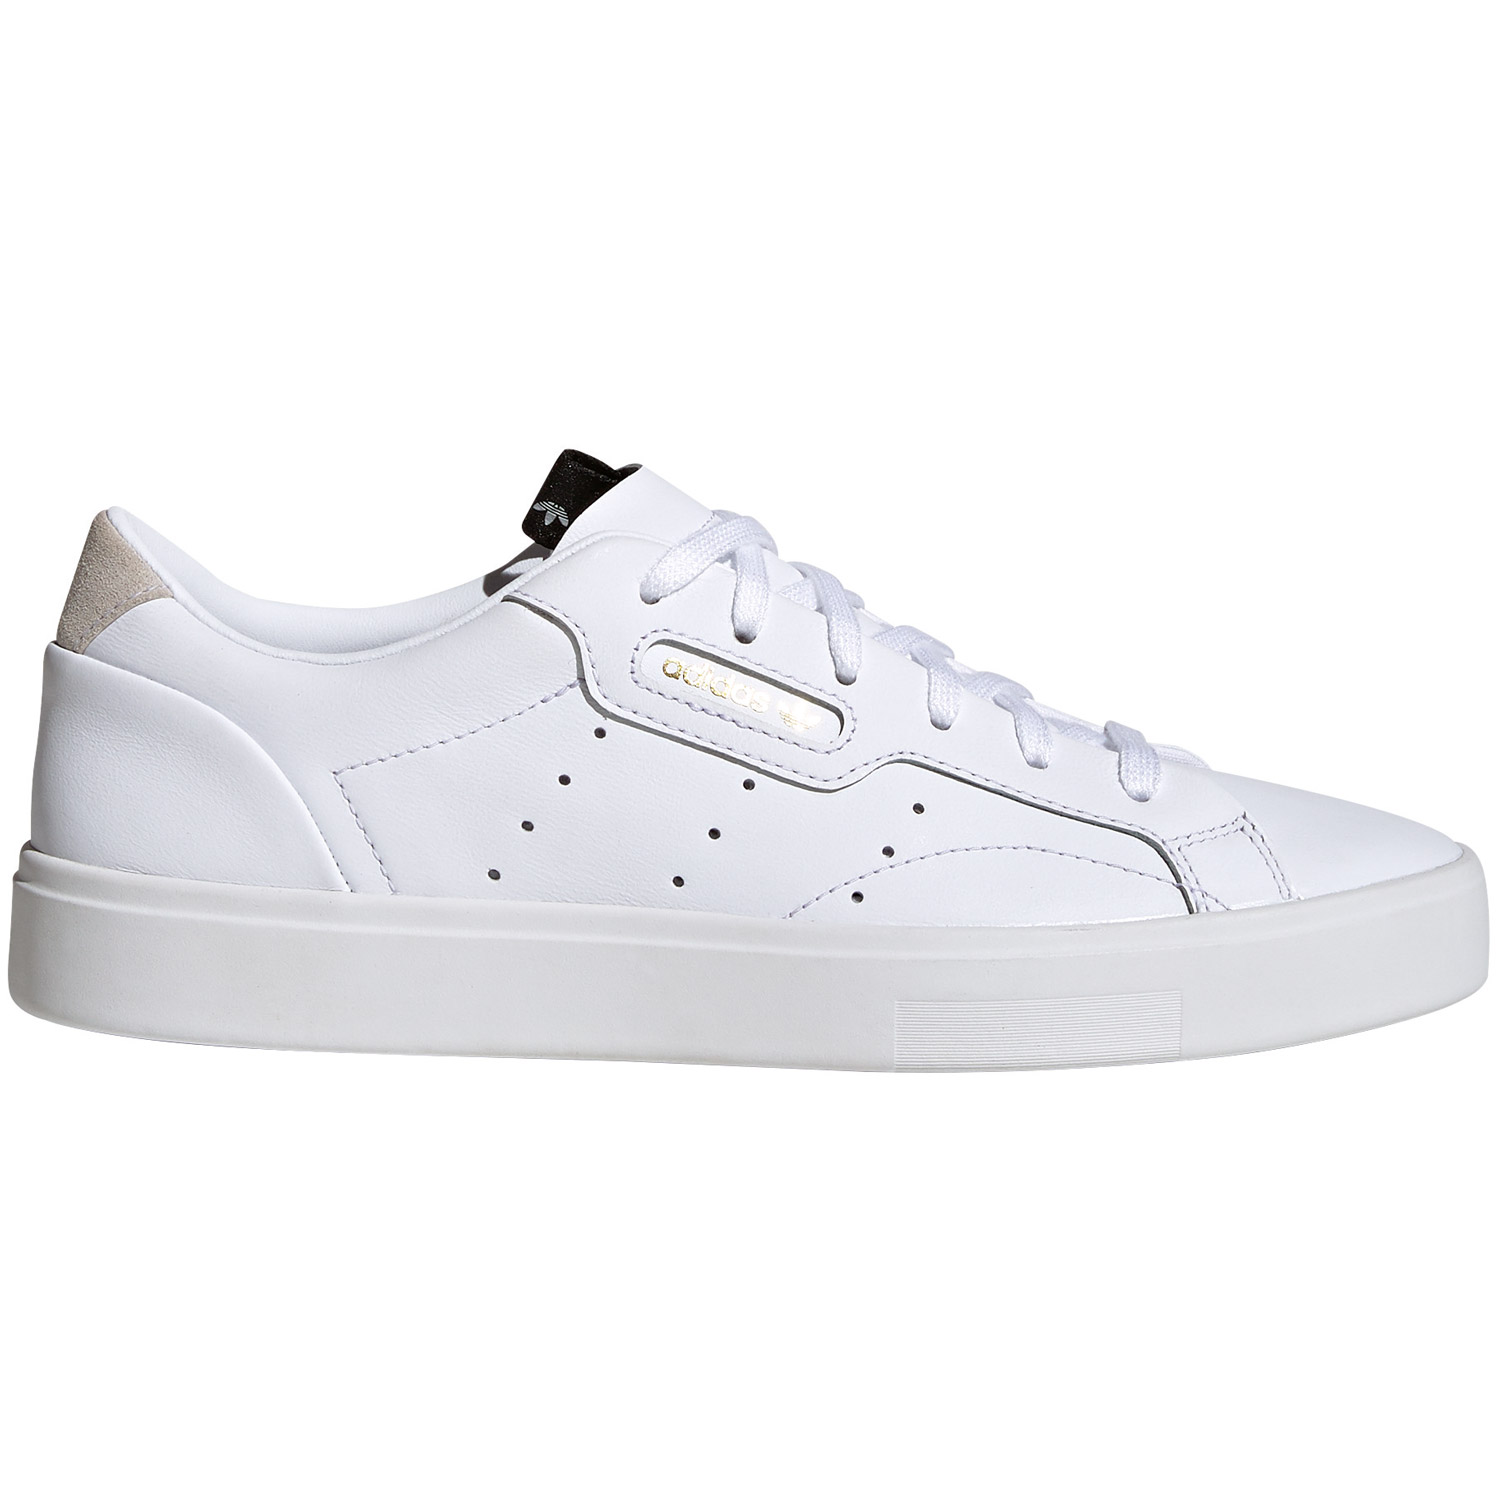 daf723145fa1 adidas Originals Sleek W Damen Sneaker weiß DB3258